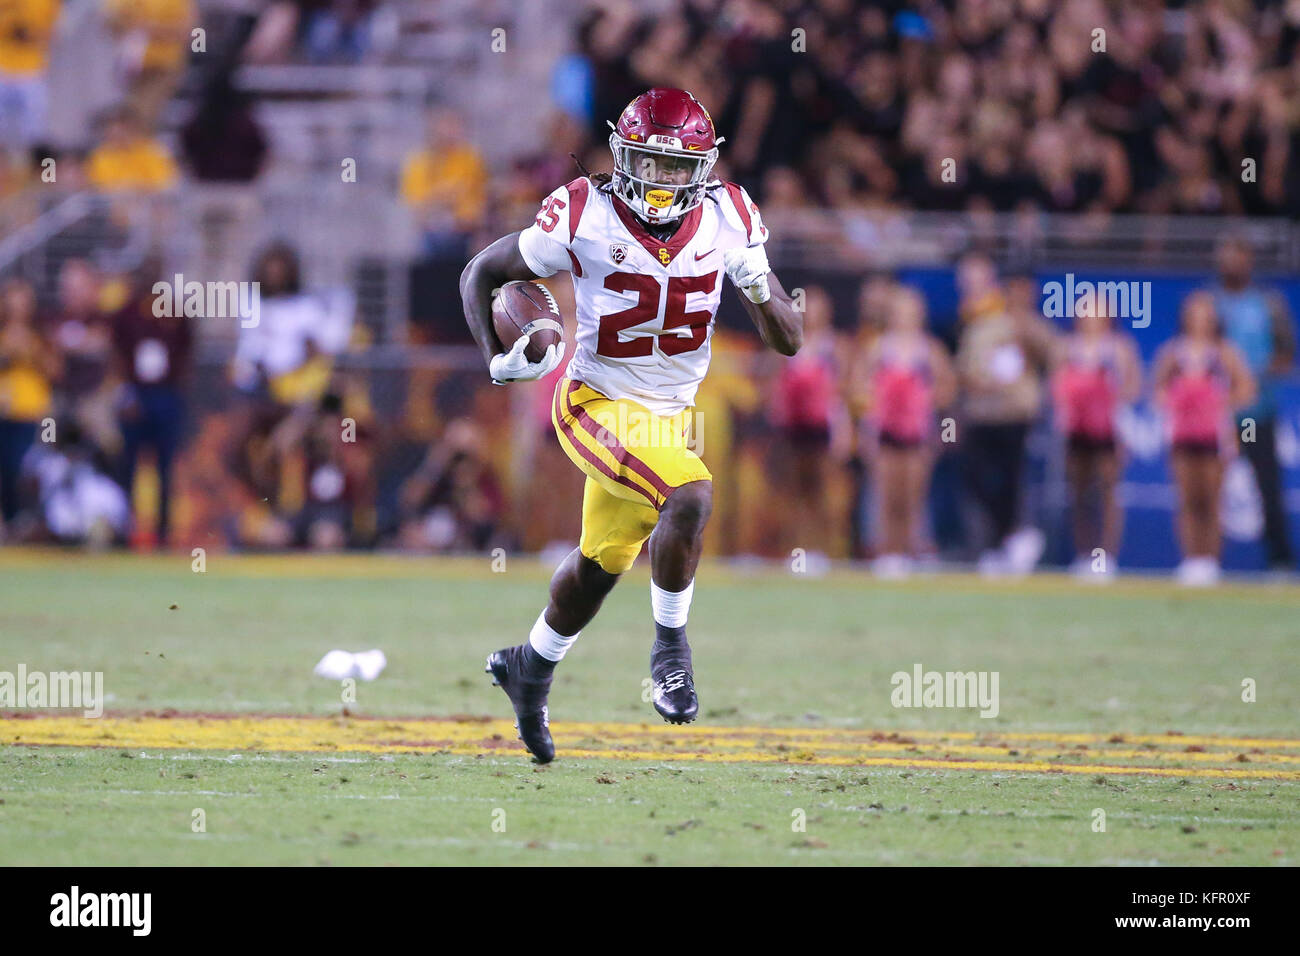 Tempe Az October 28 Ronald Jones Ii 25 Of The Usc Trojans Runs Stock Photo Alamy